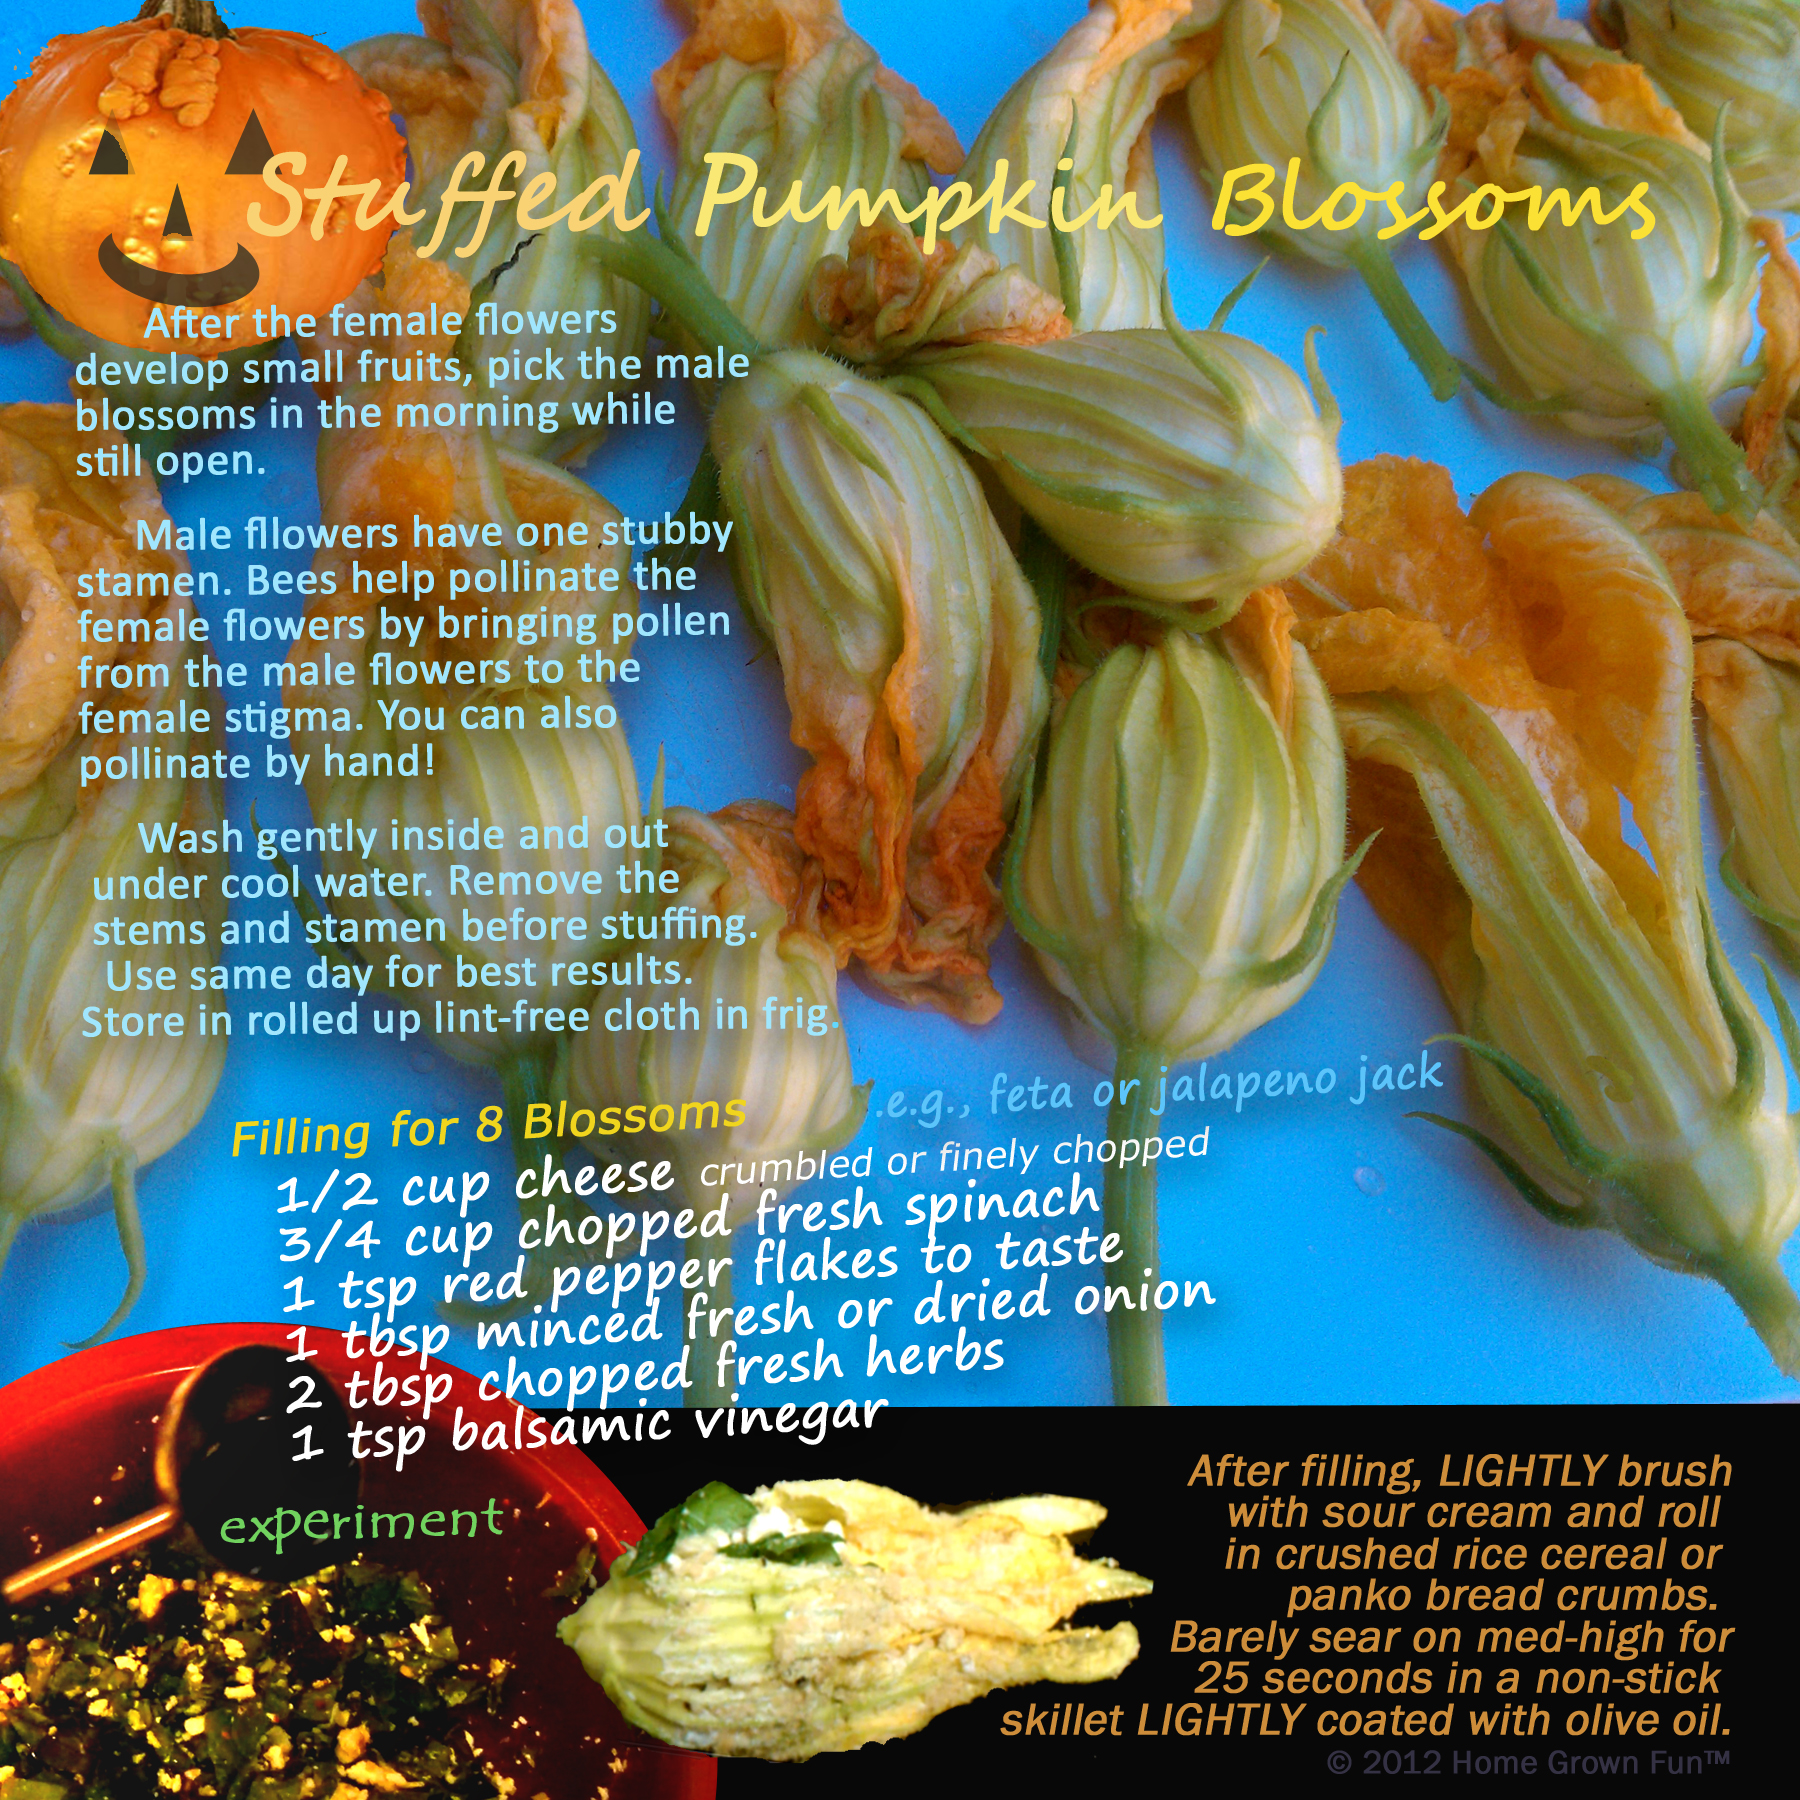 How to make stuffed squash blossoms and how to make stuffed pumpkin blossoms